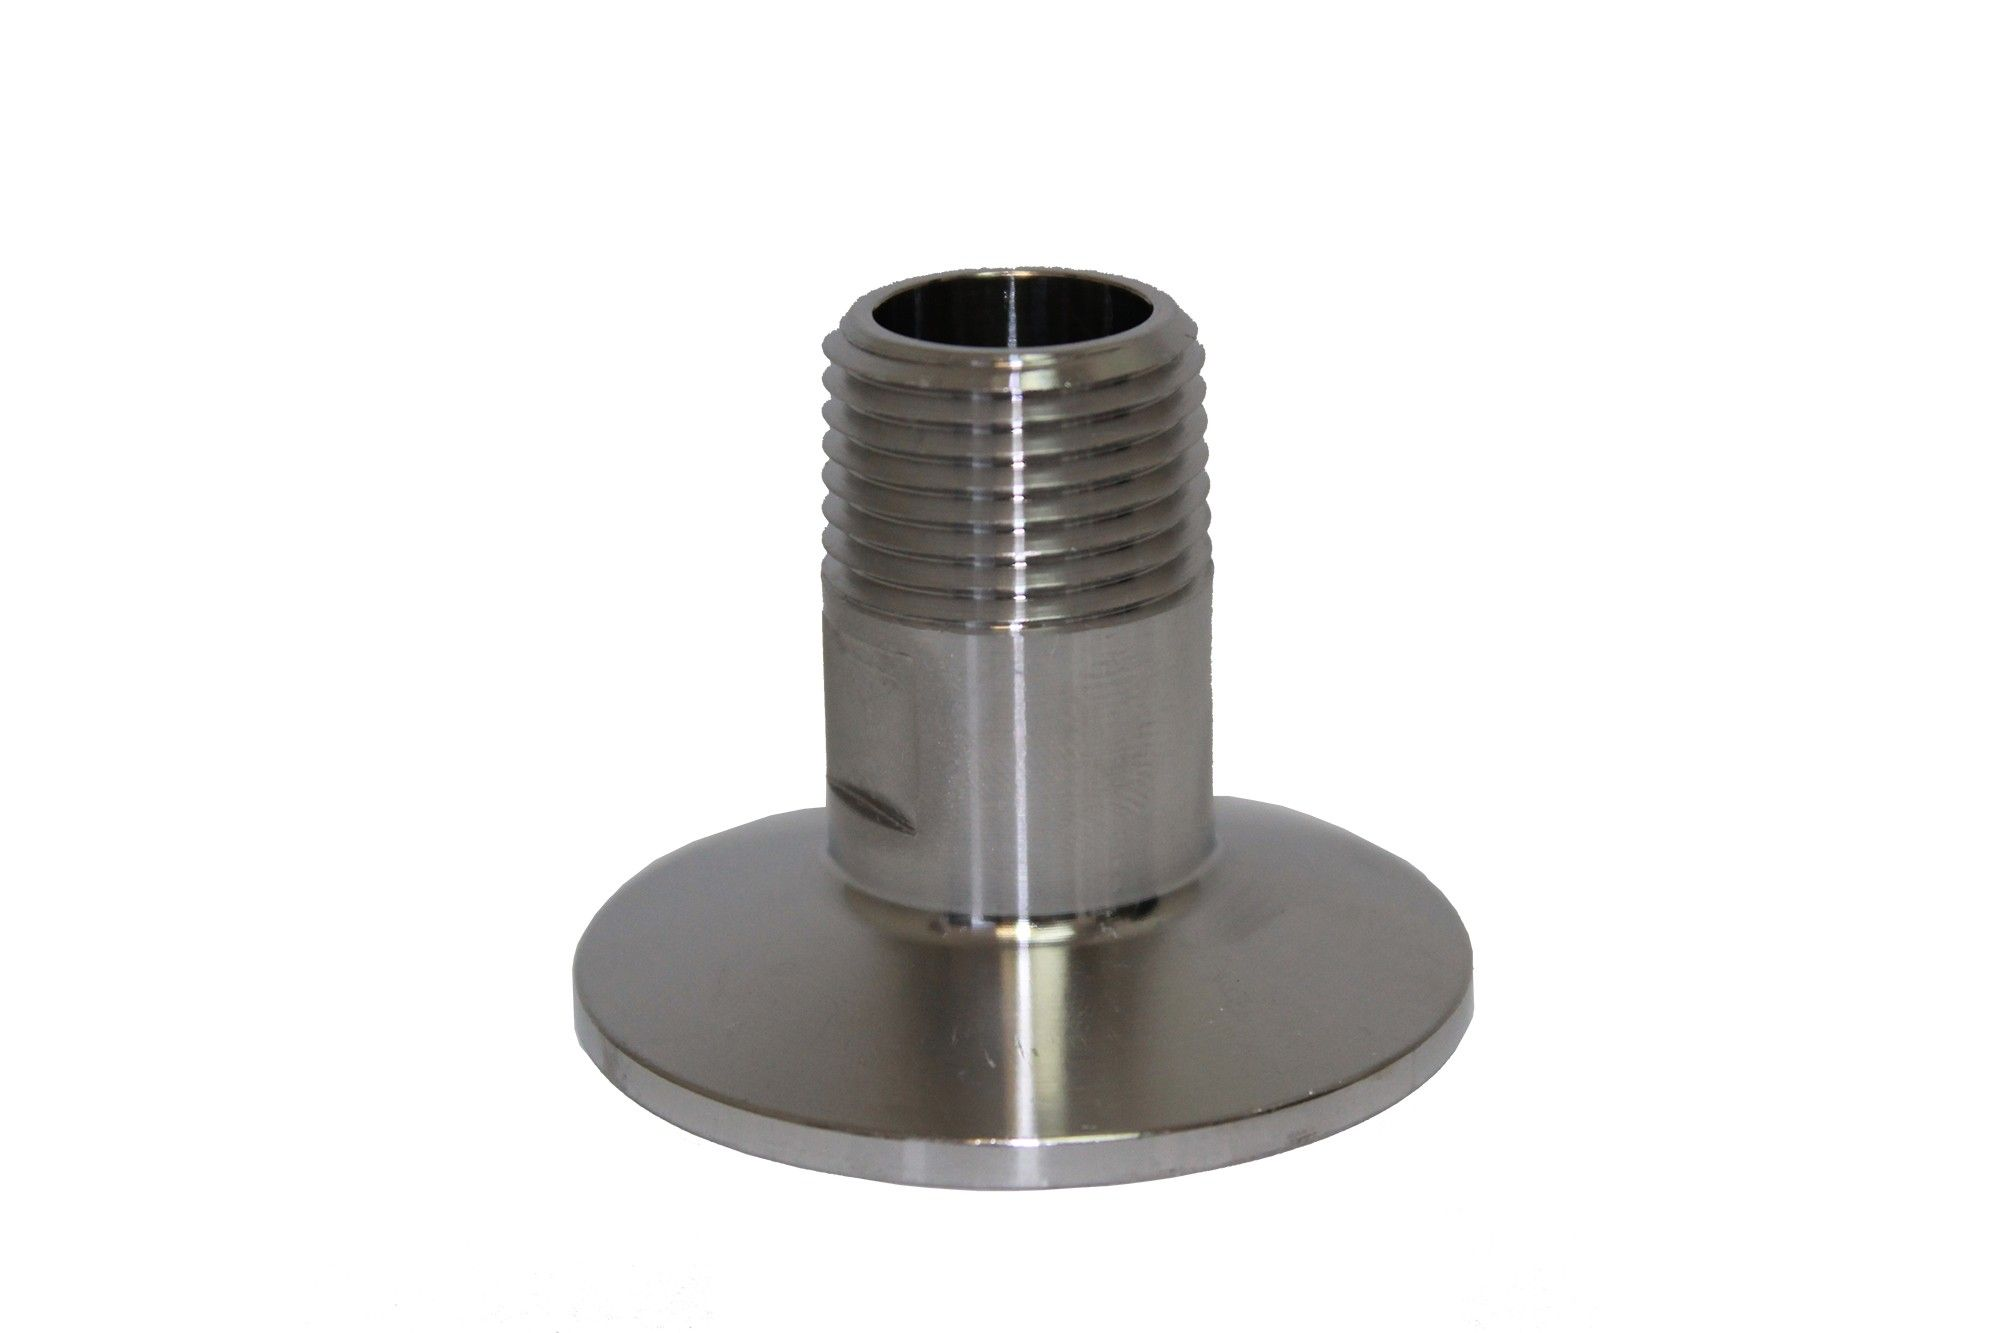 Stainless Steel Tri Clamp Fittings used in almost every mercial